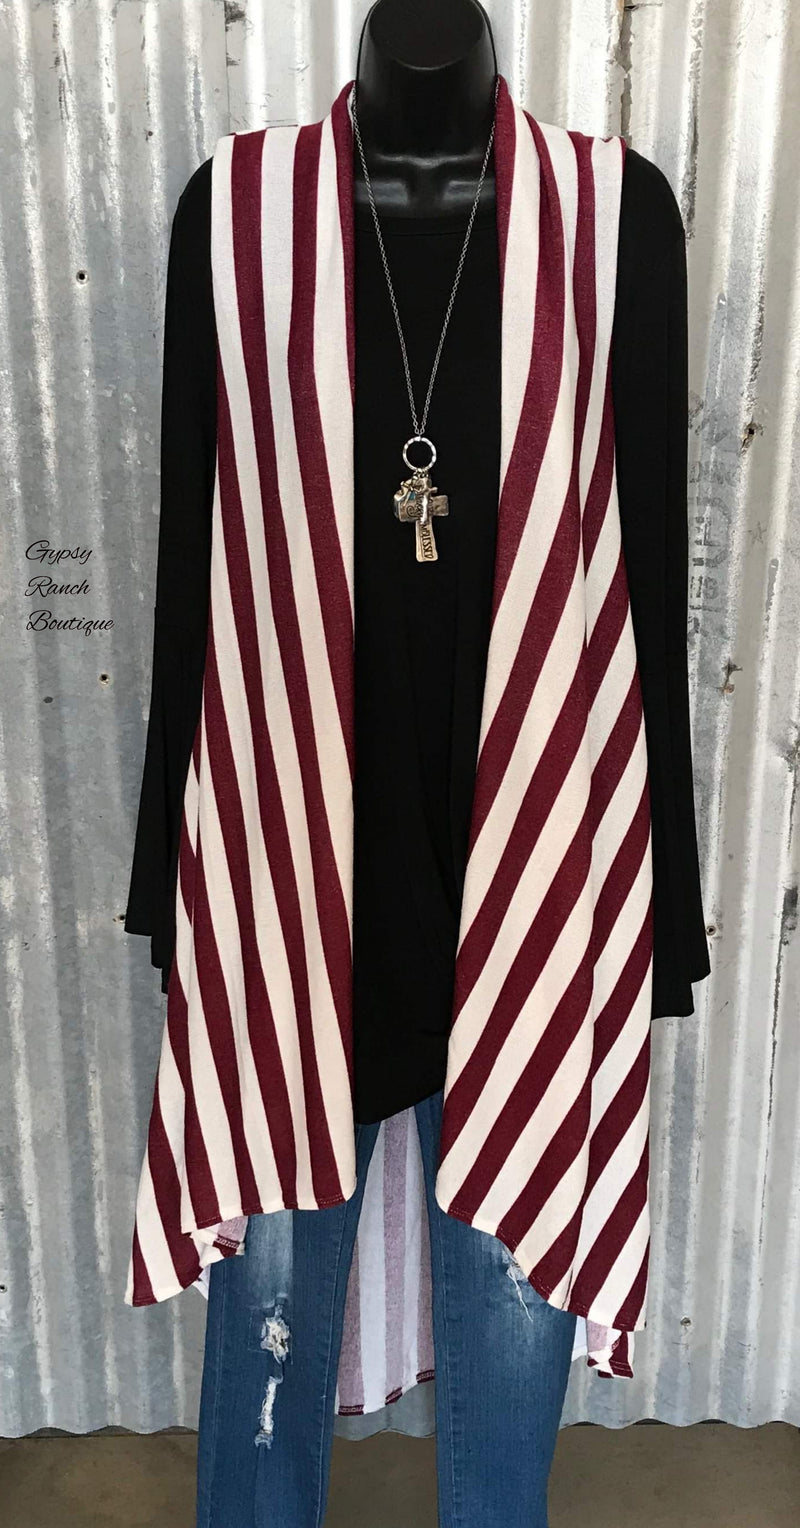 Presley Burgundy Stripe Vest -Also in Plus Size